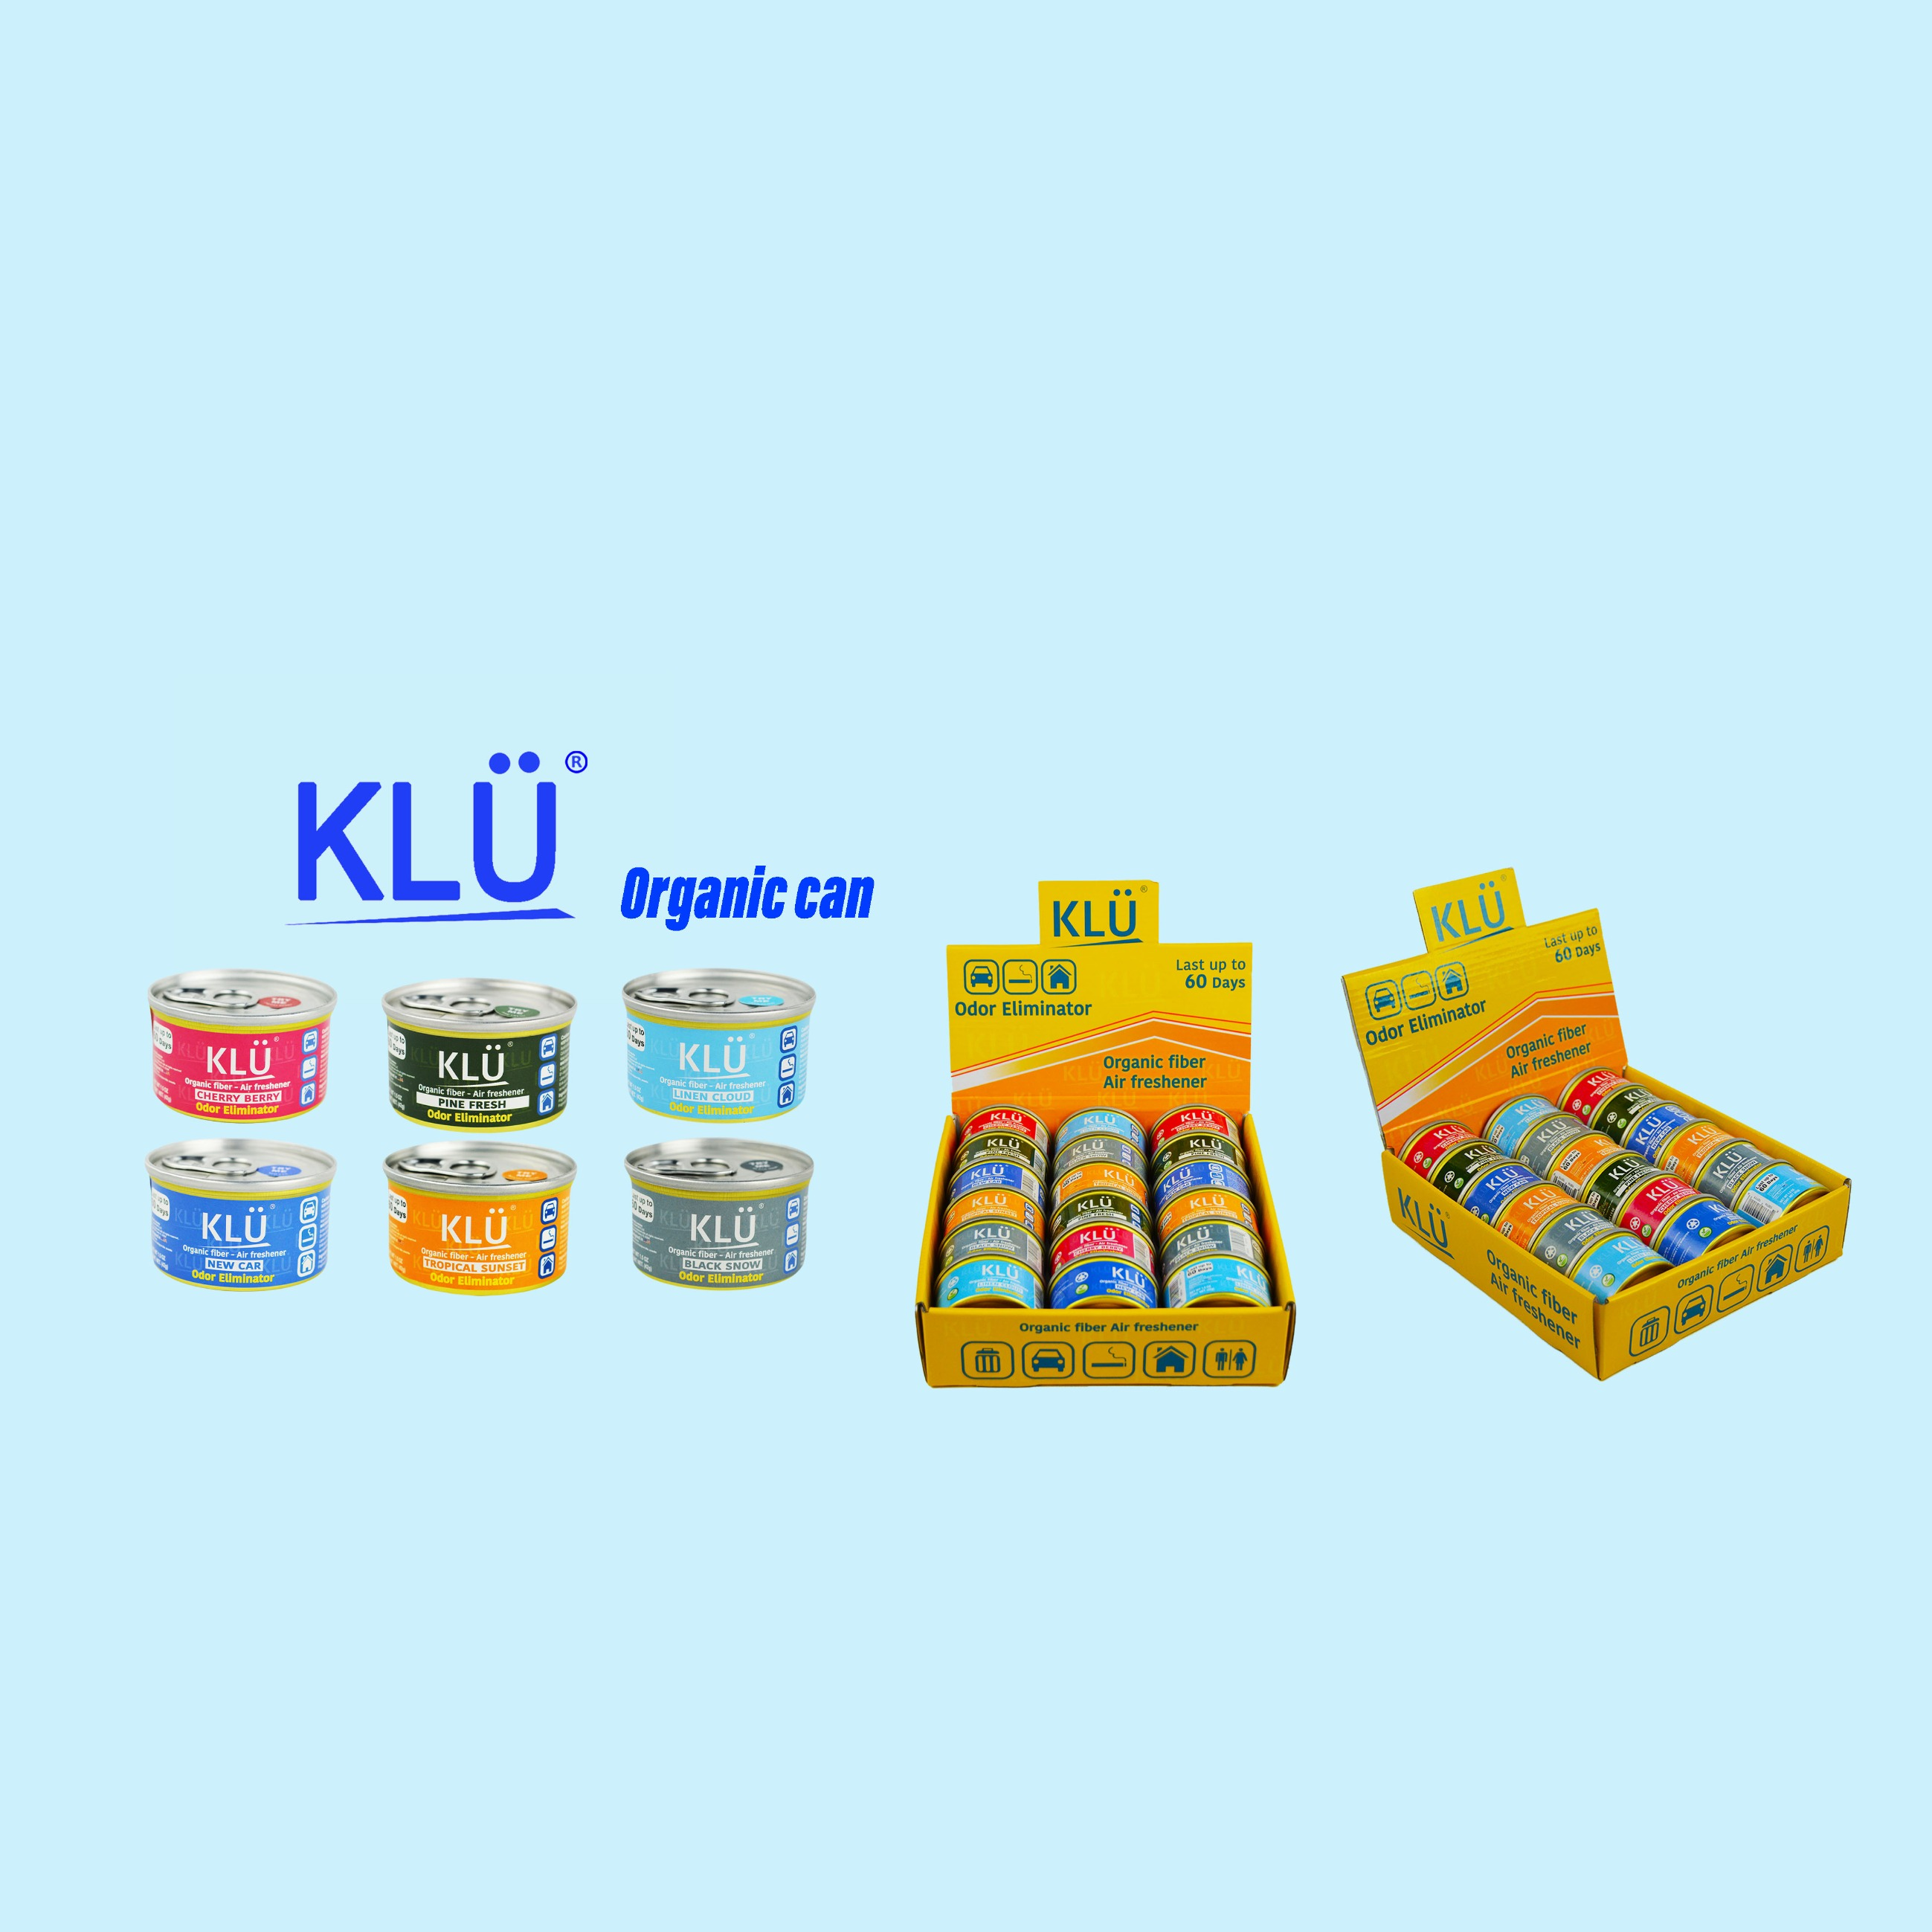 klu organic can_edited.jpg